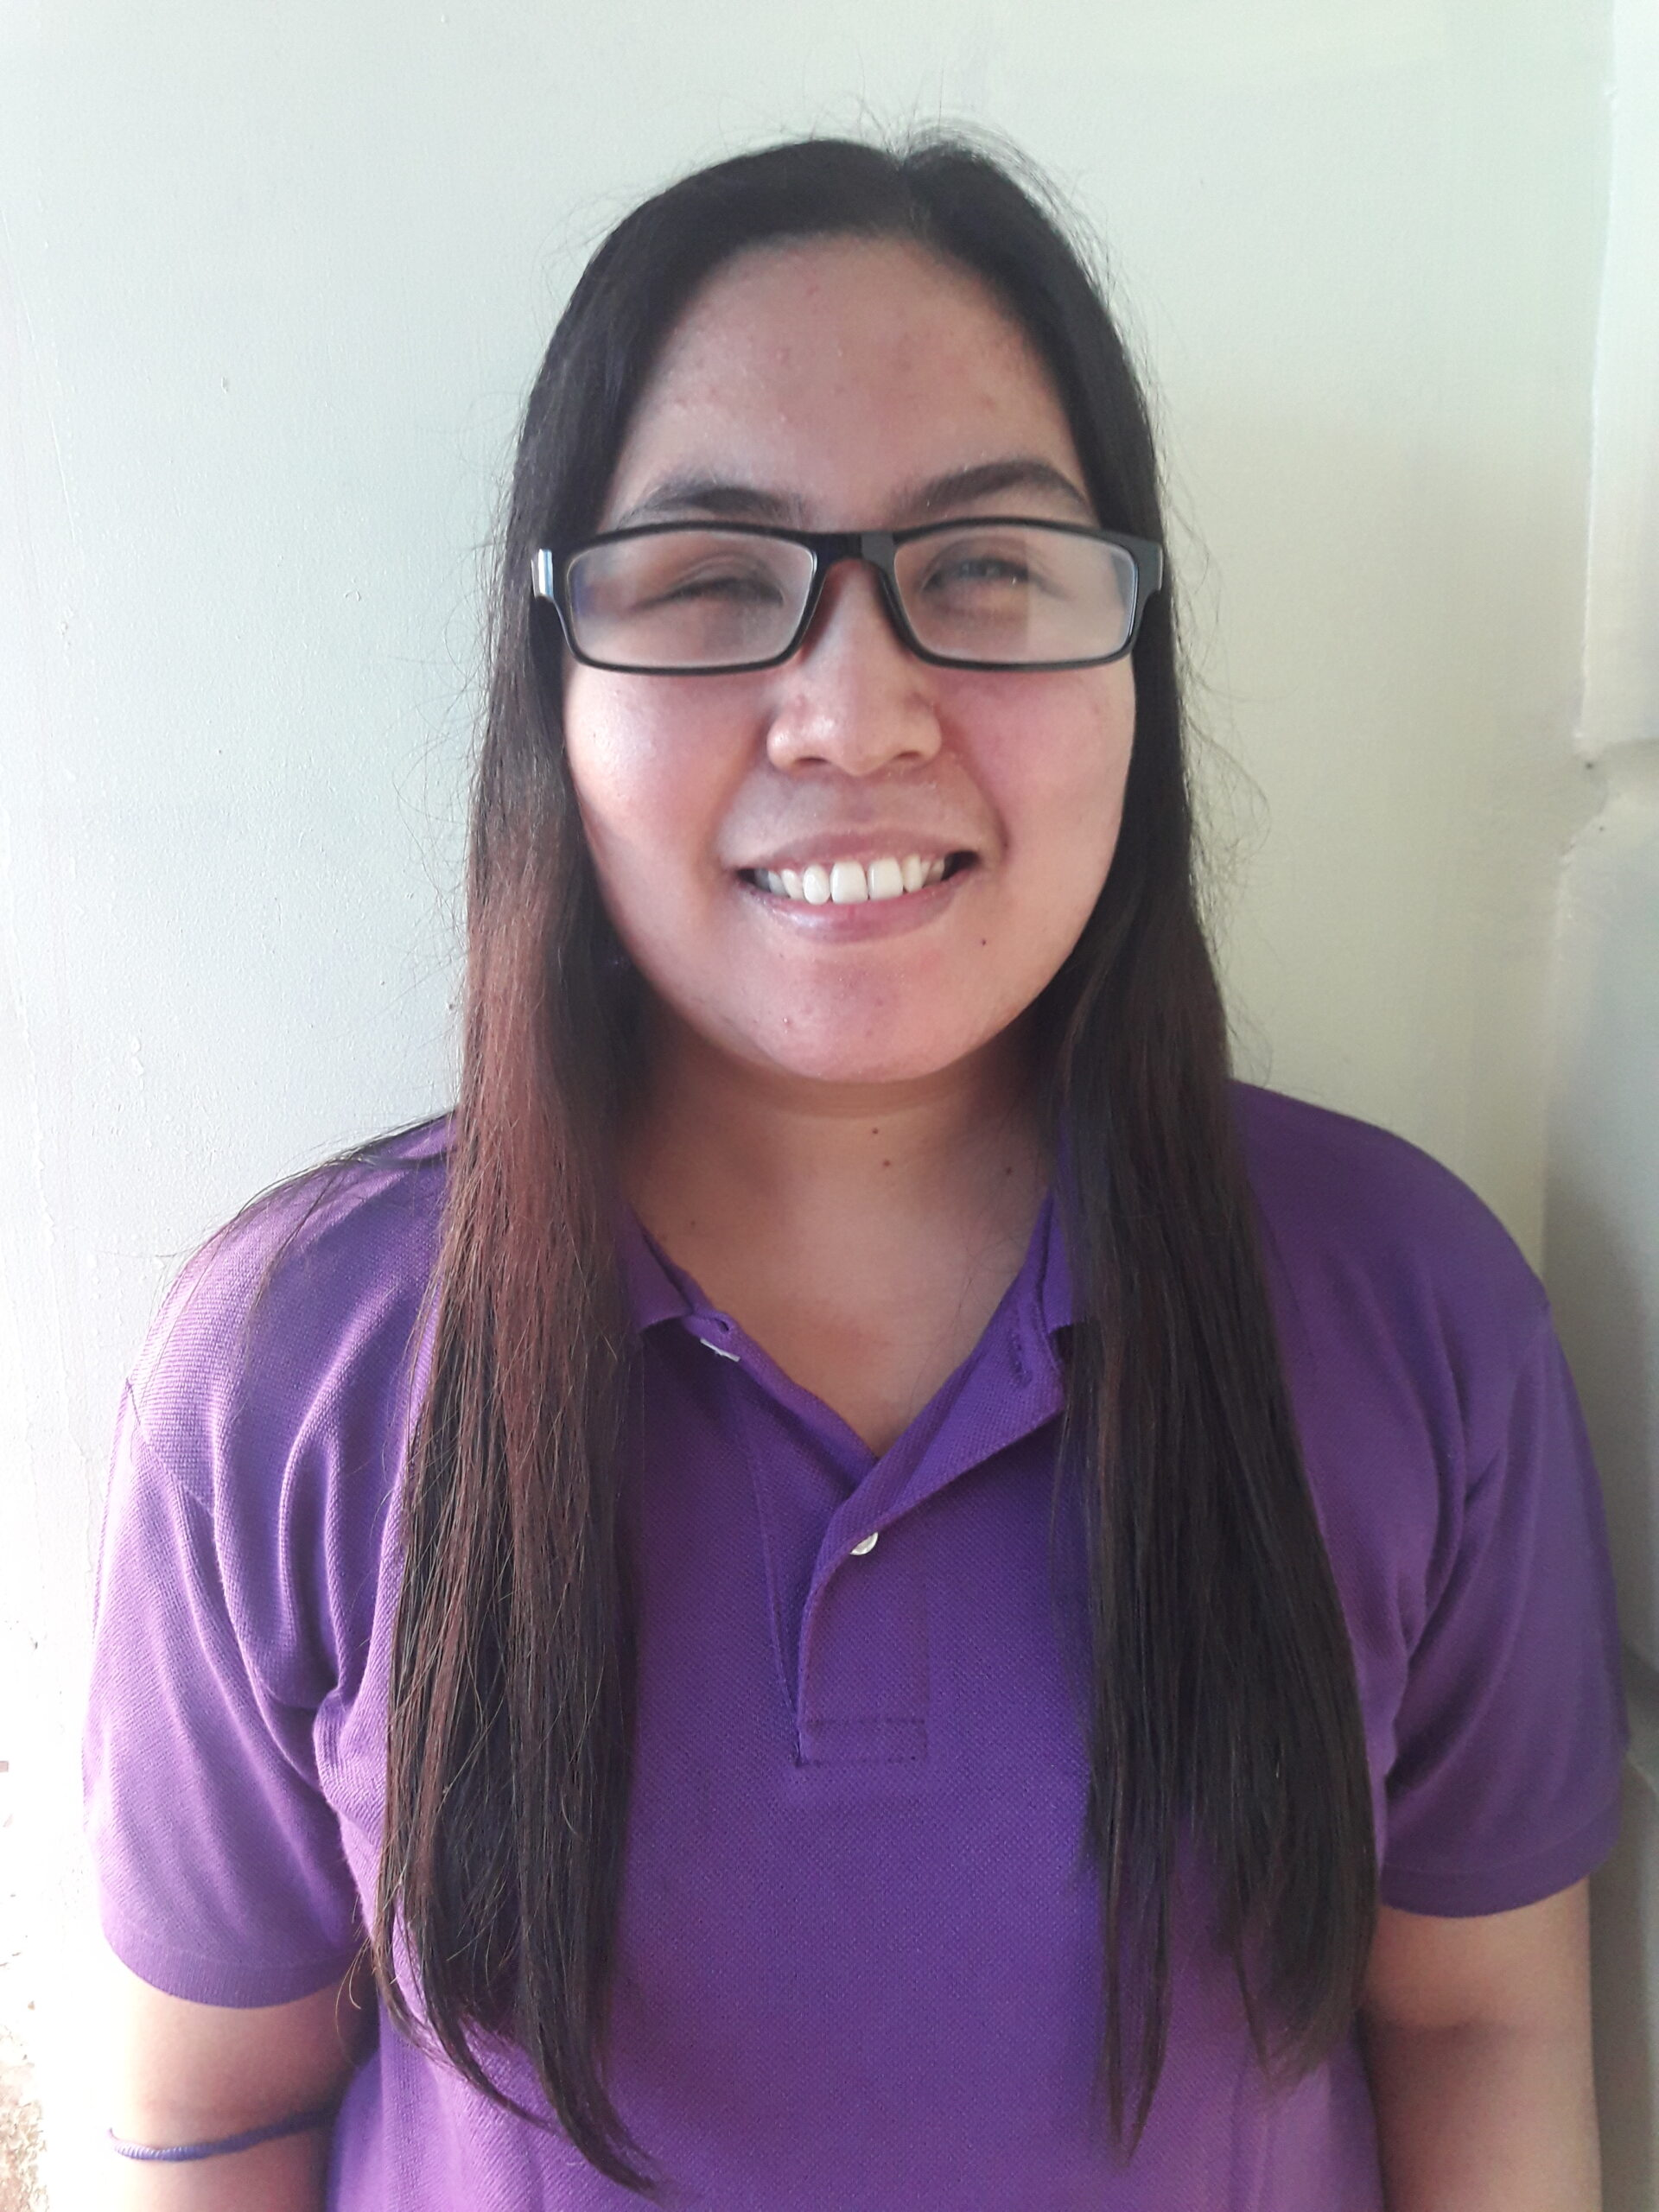 Ms. Nerikka wearing a violet polo shirt